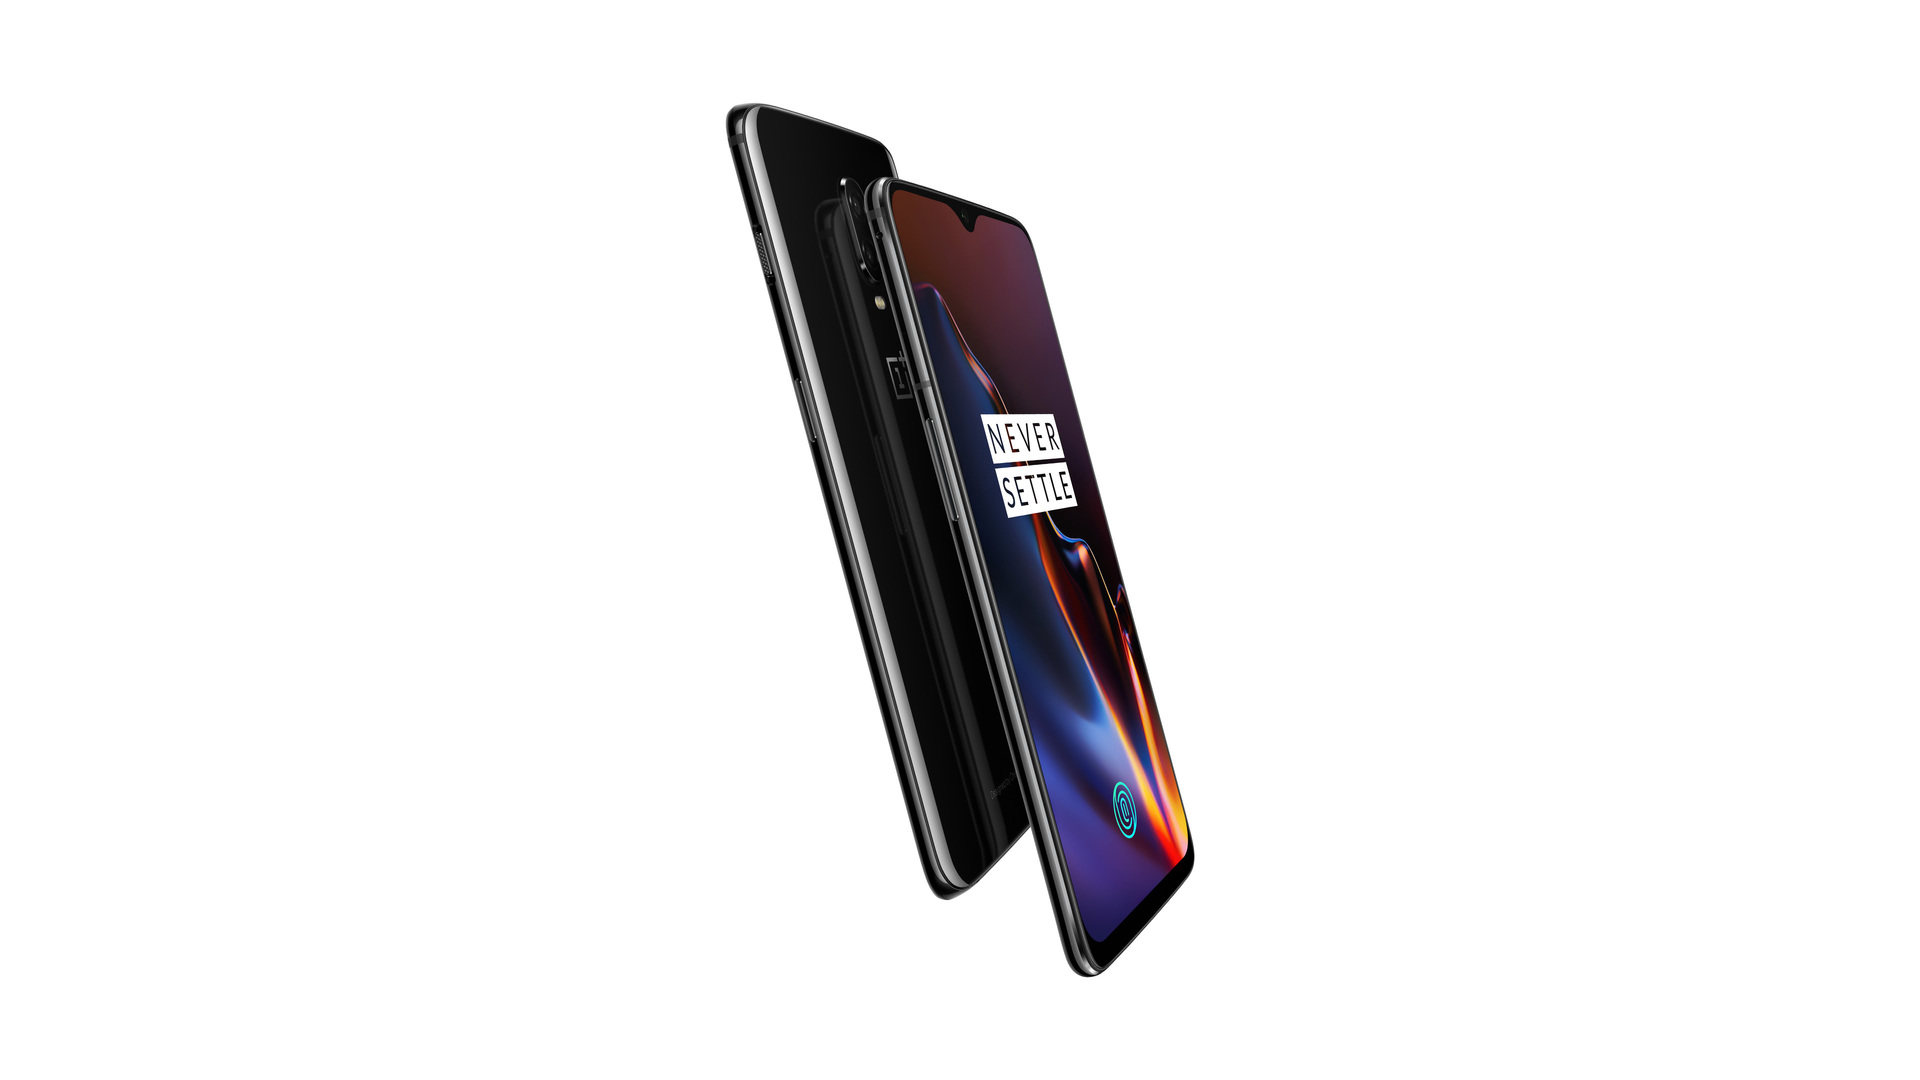 OnePlus-6T-teardrop-display